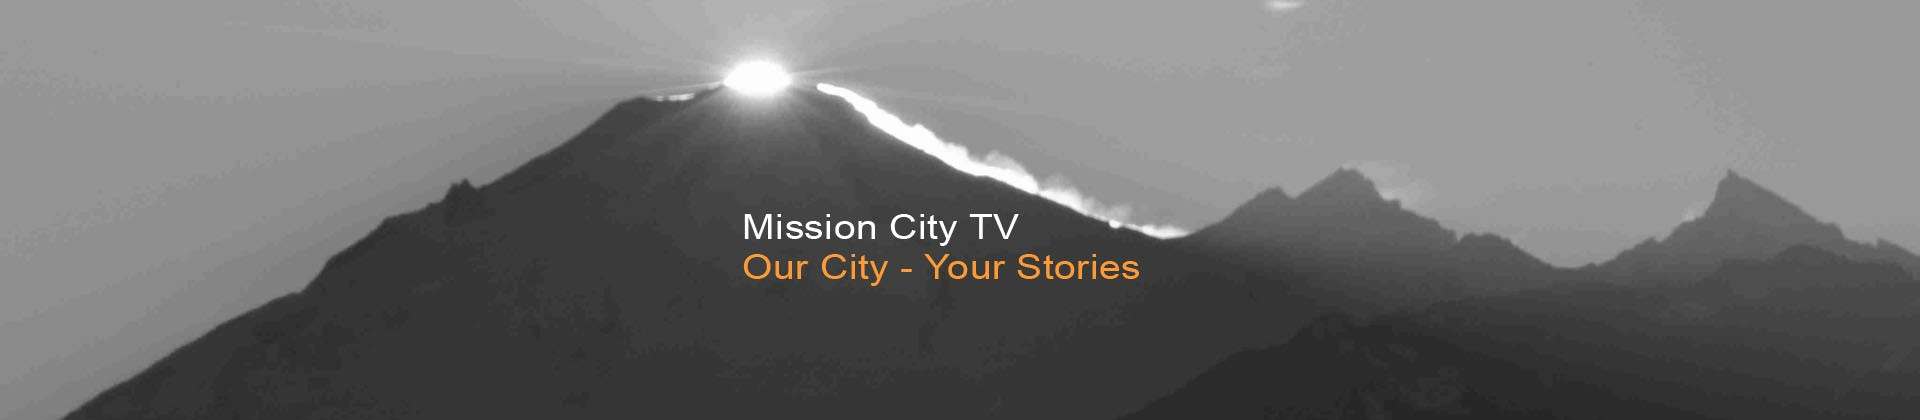 mission-city-tv-com-mount-baker-website-banner-a-1920x420-dd937-10162018.jpg